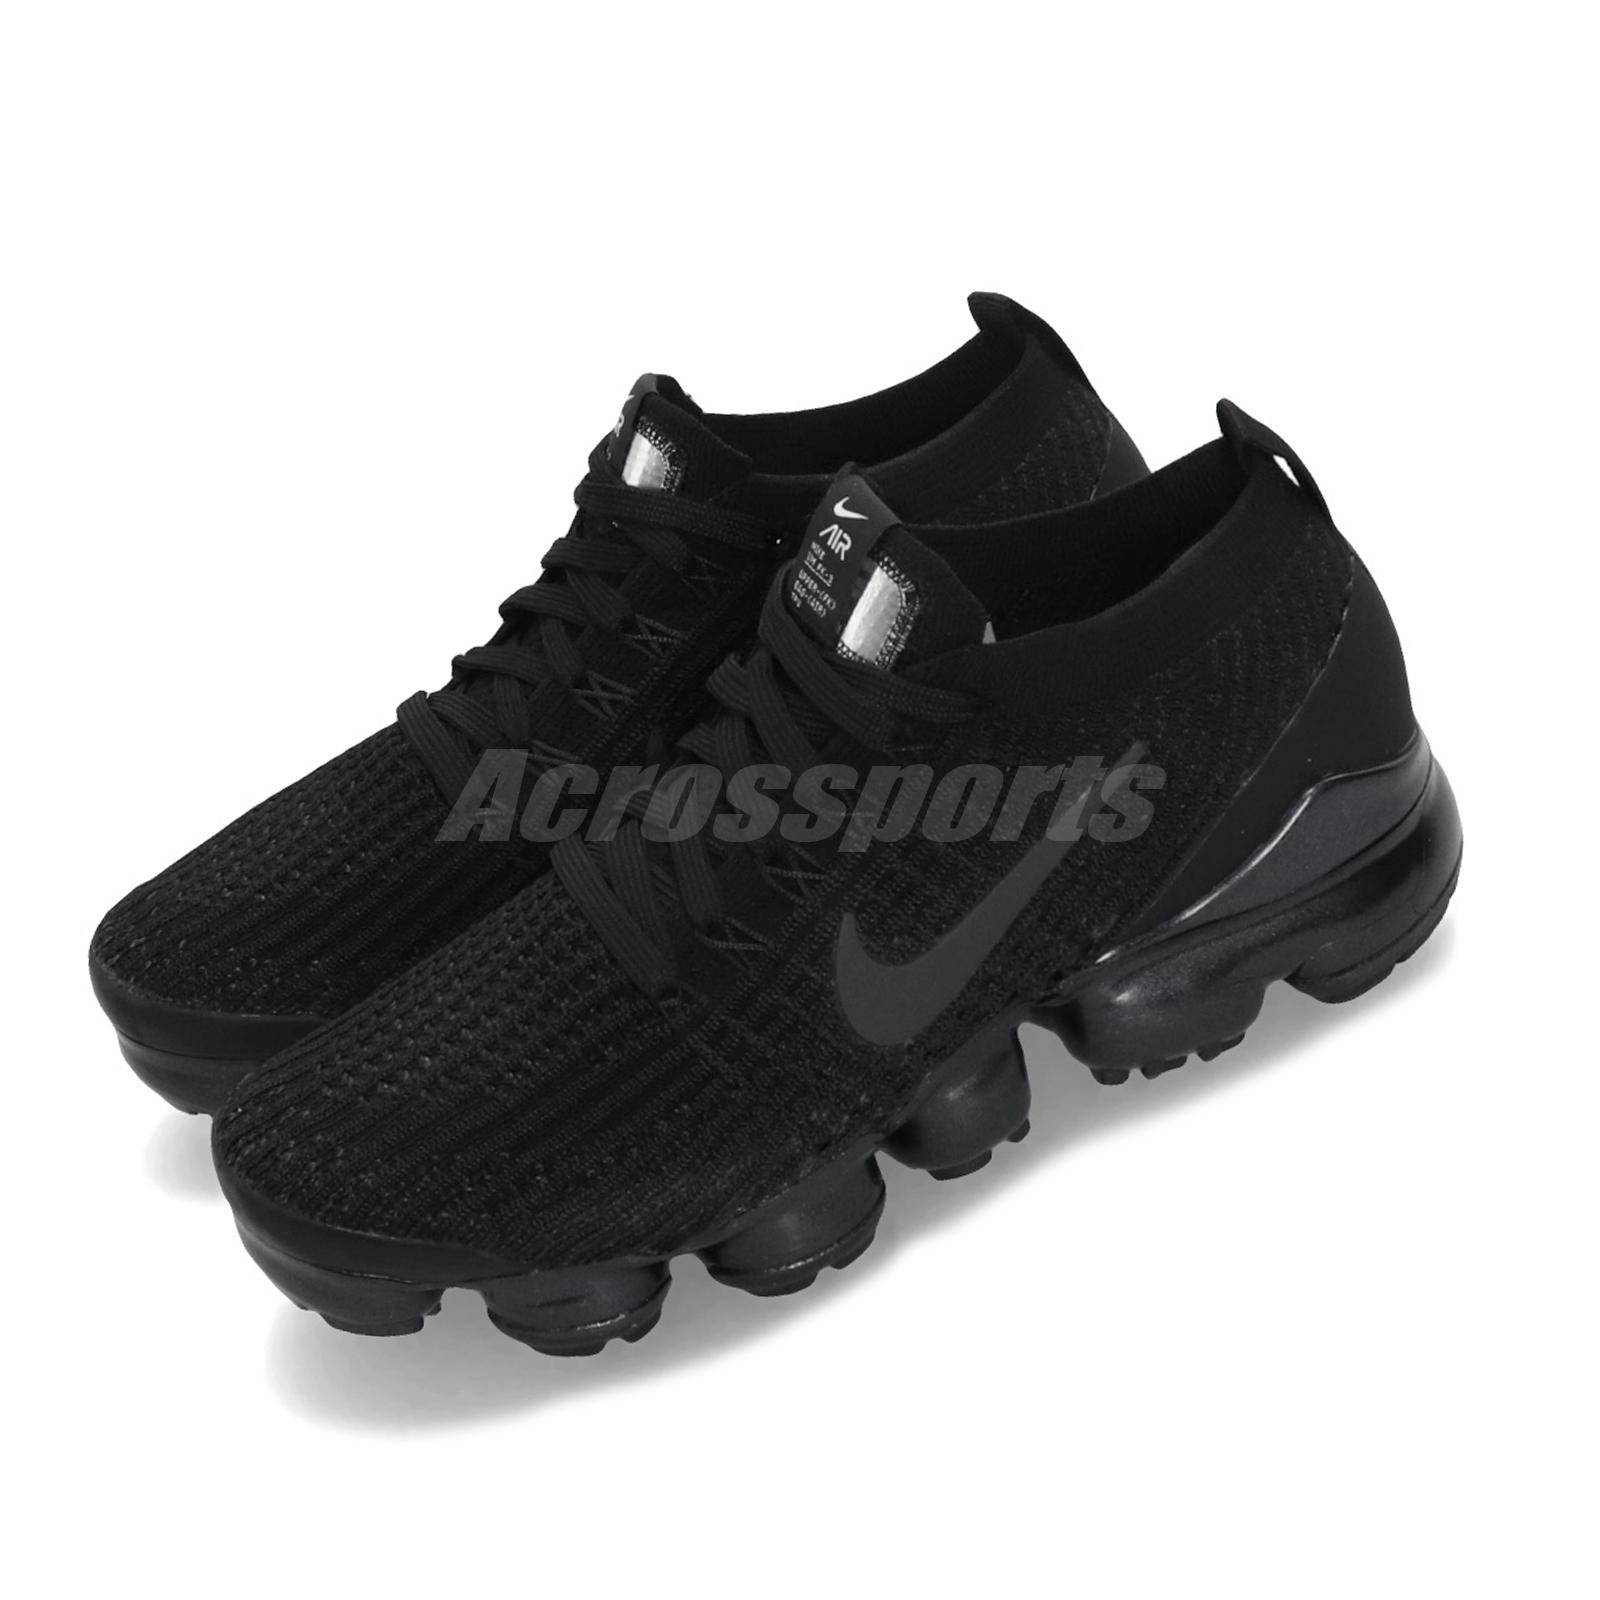 buy online bf632 0e714 Details about Nike Wmns Air Vapormax Flyknit 3 III Black White Women  Running Shoes AJ6910-002